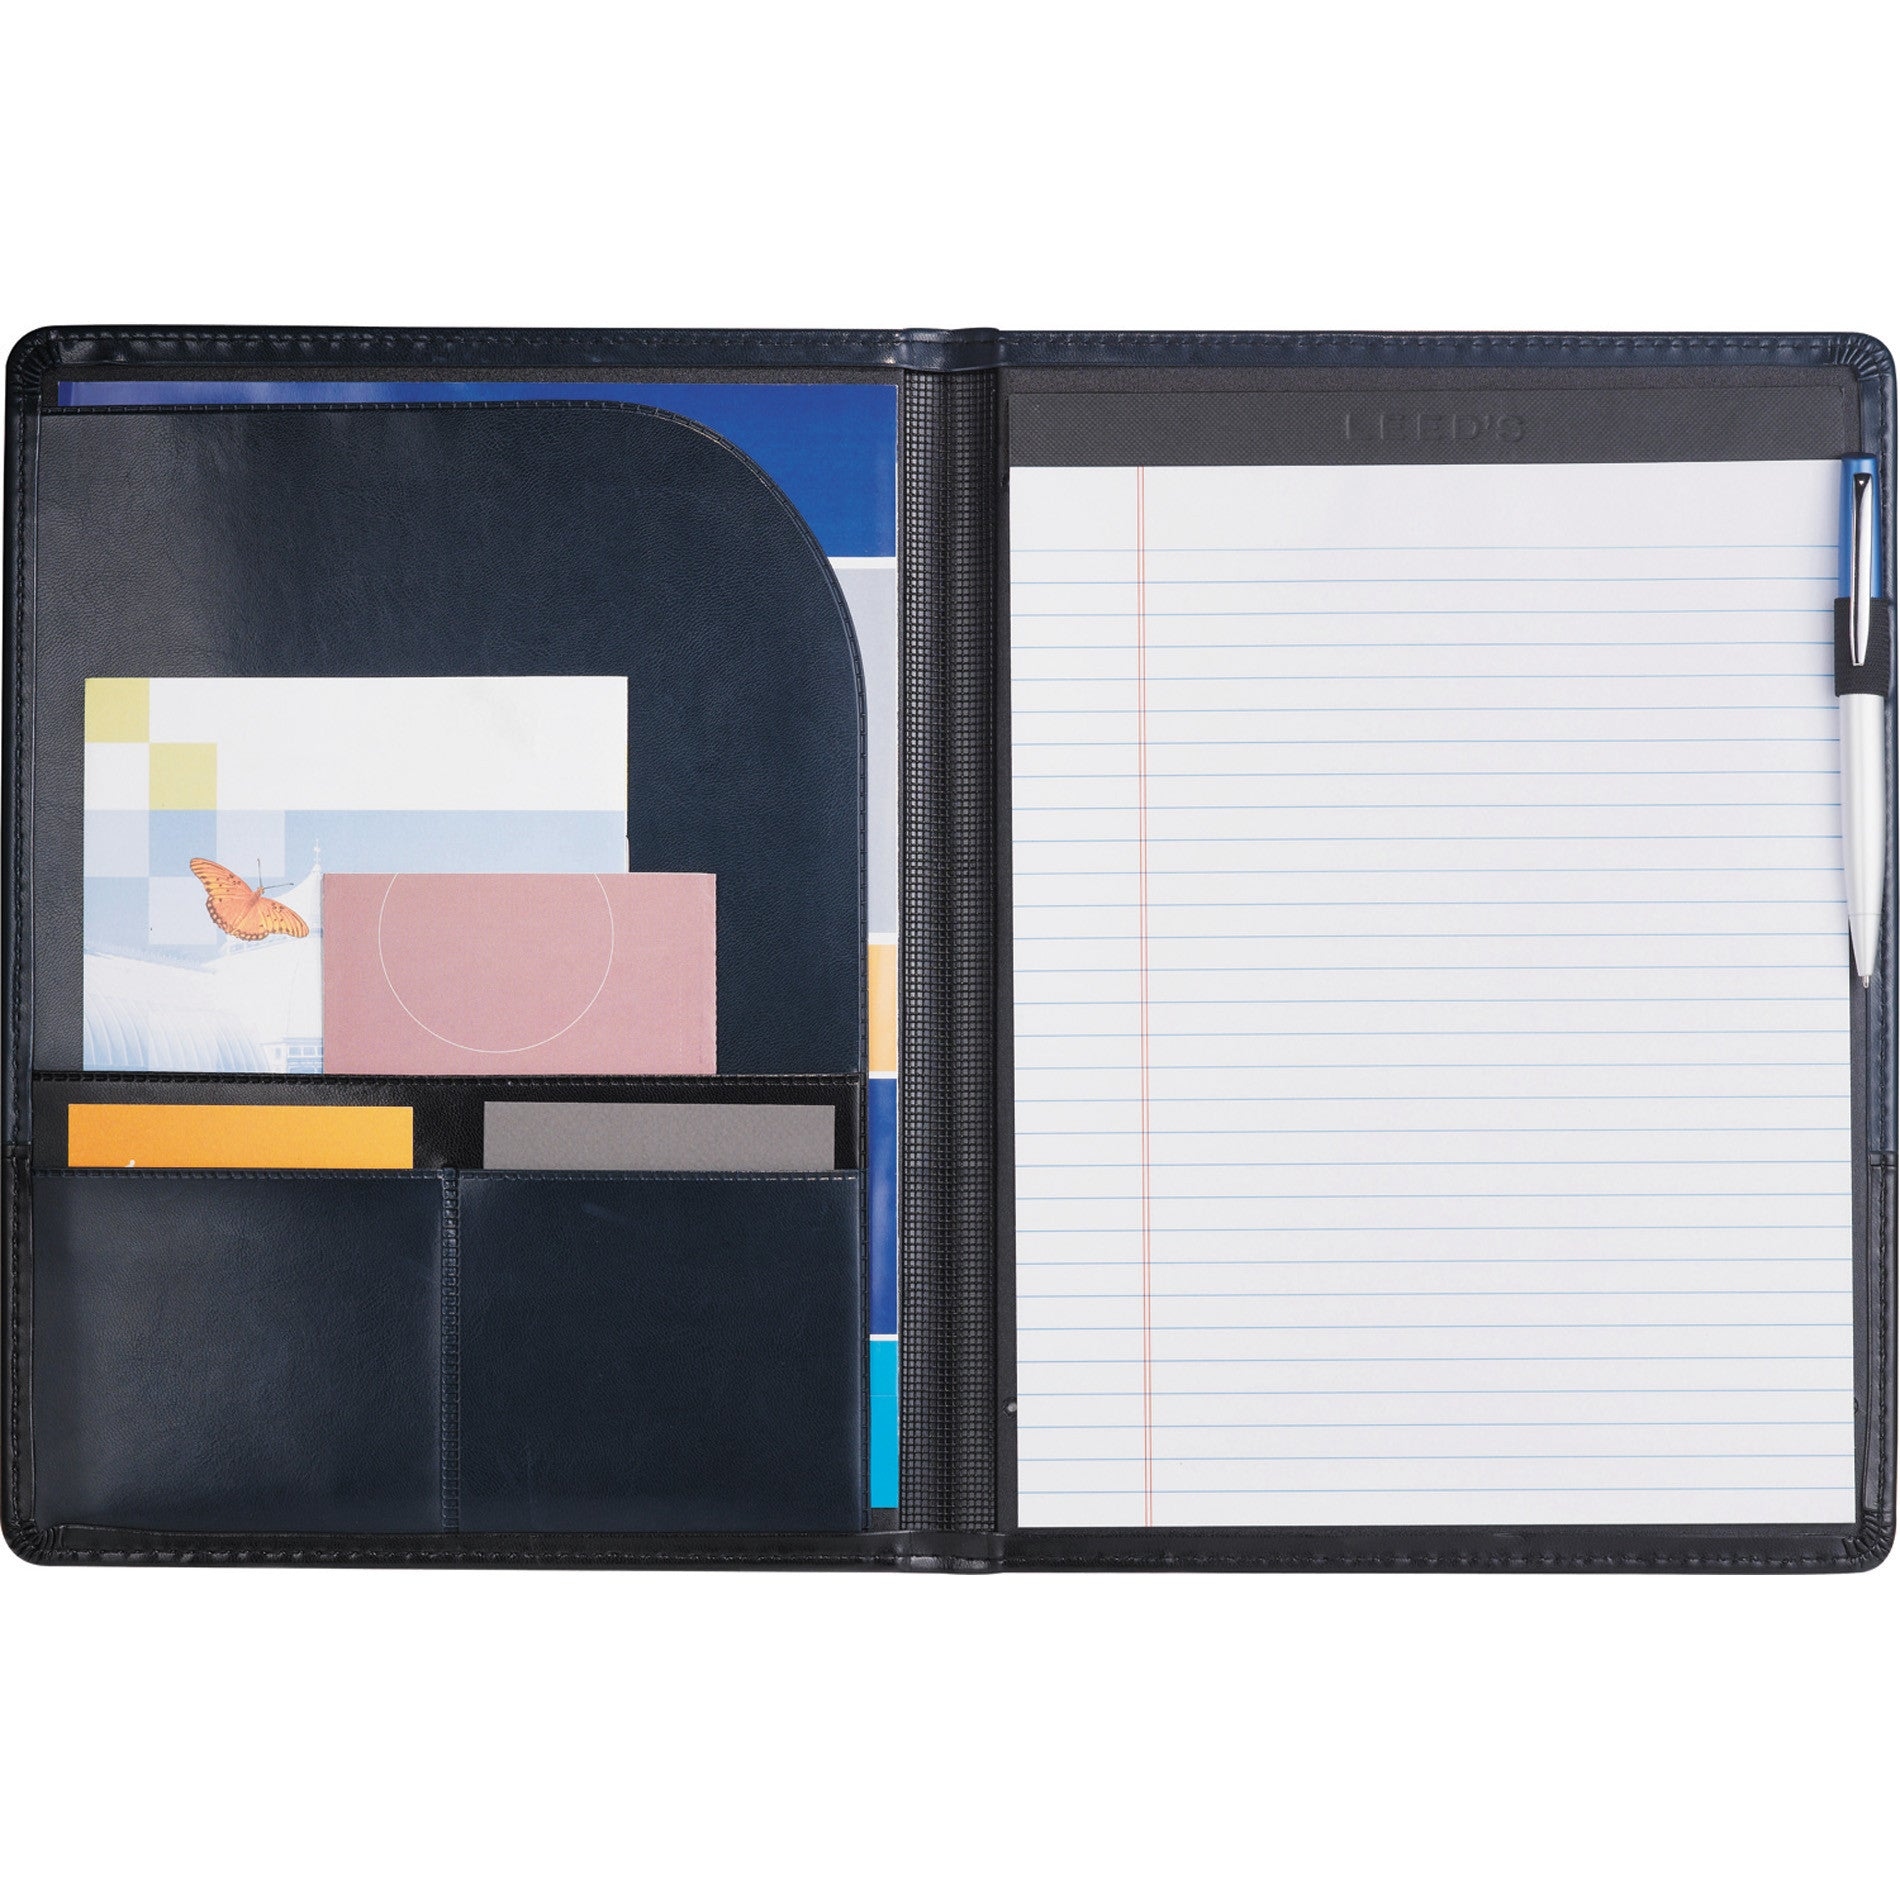 Debossed Writing Padfolio